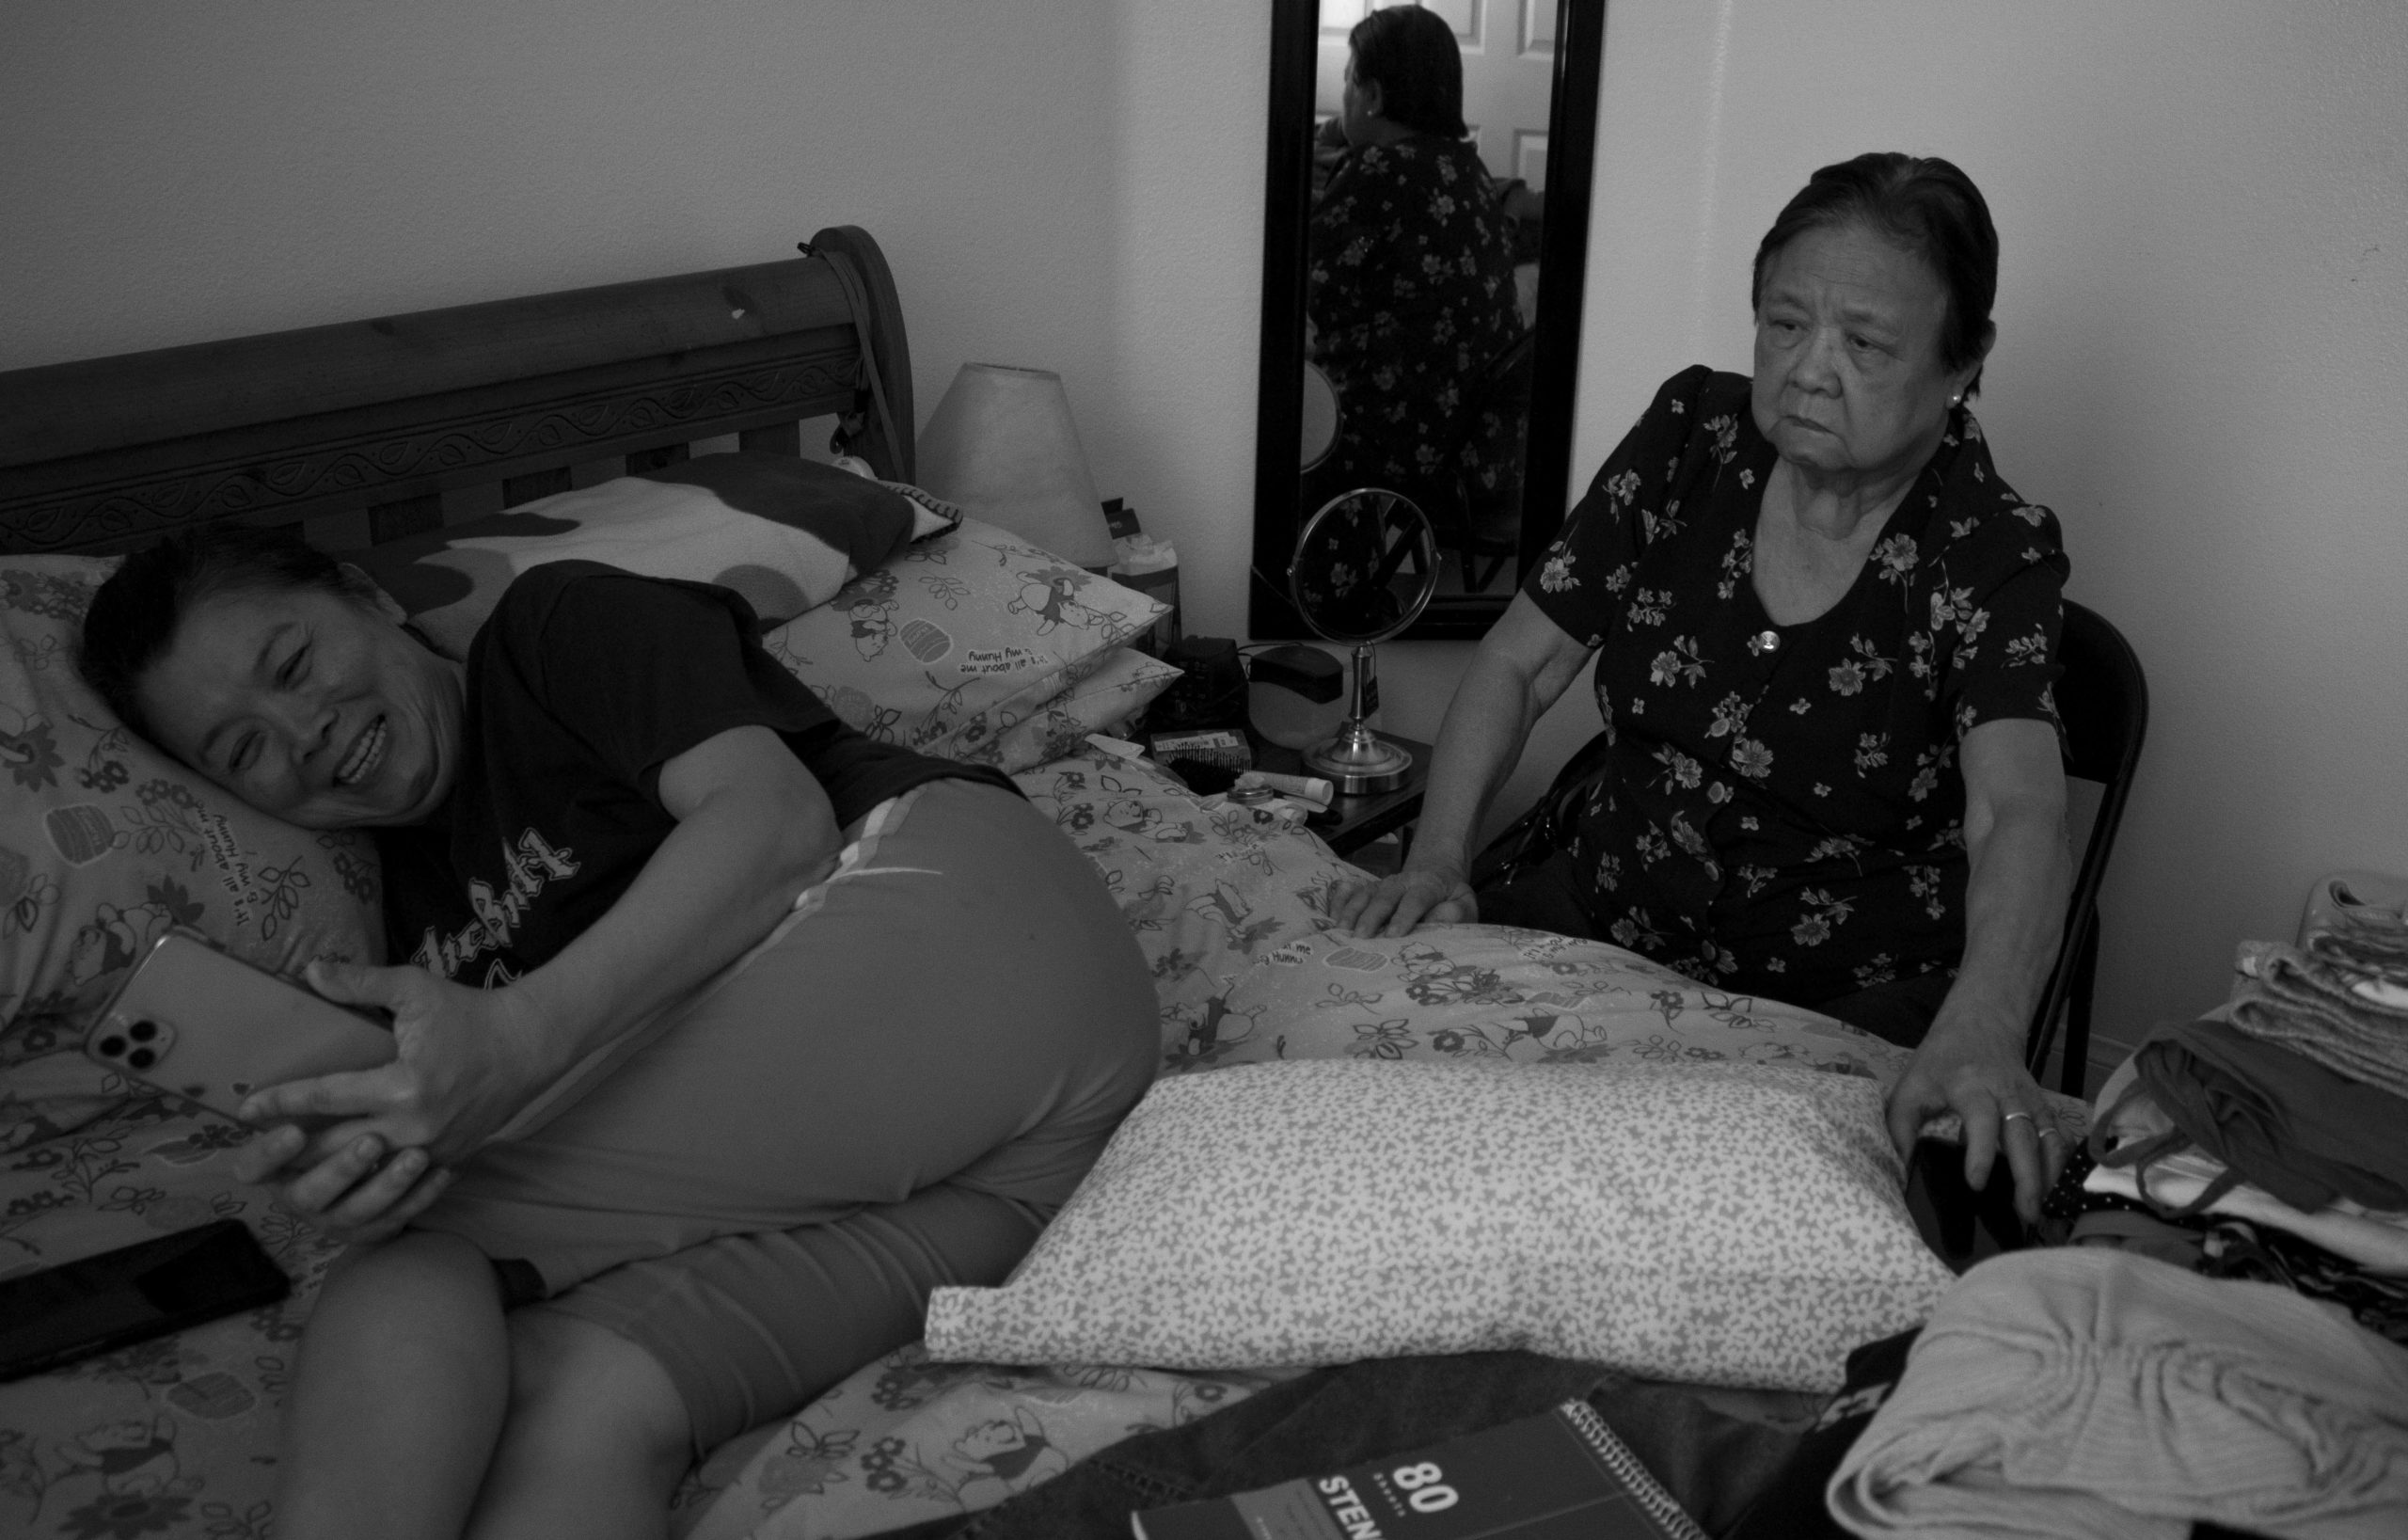 An older woman sits in a chair next to bed while a woman on the bed cries while looking at a phone.